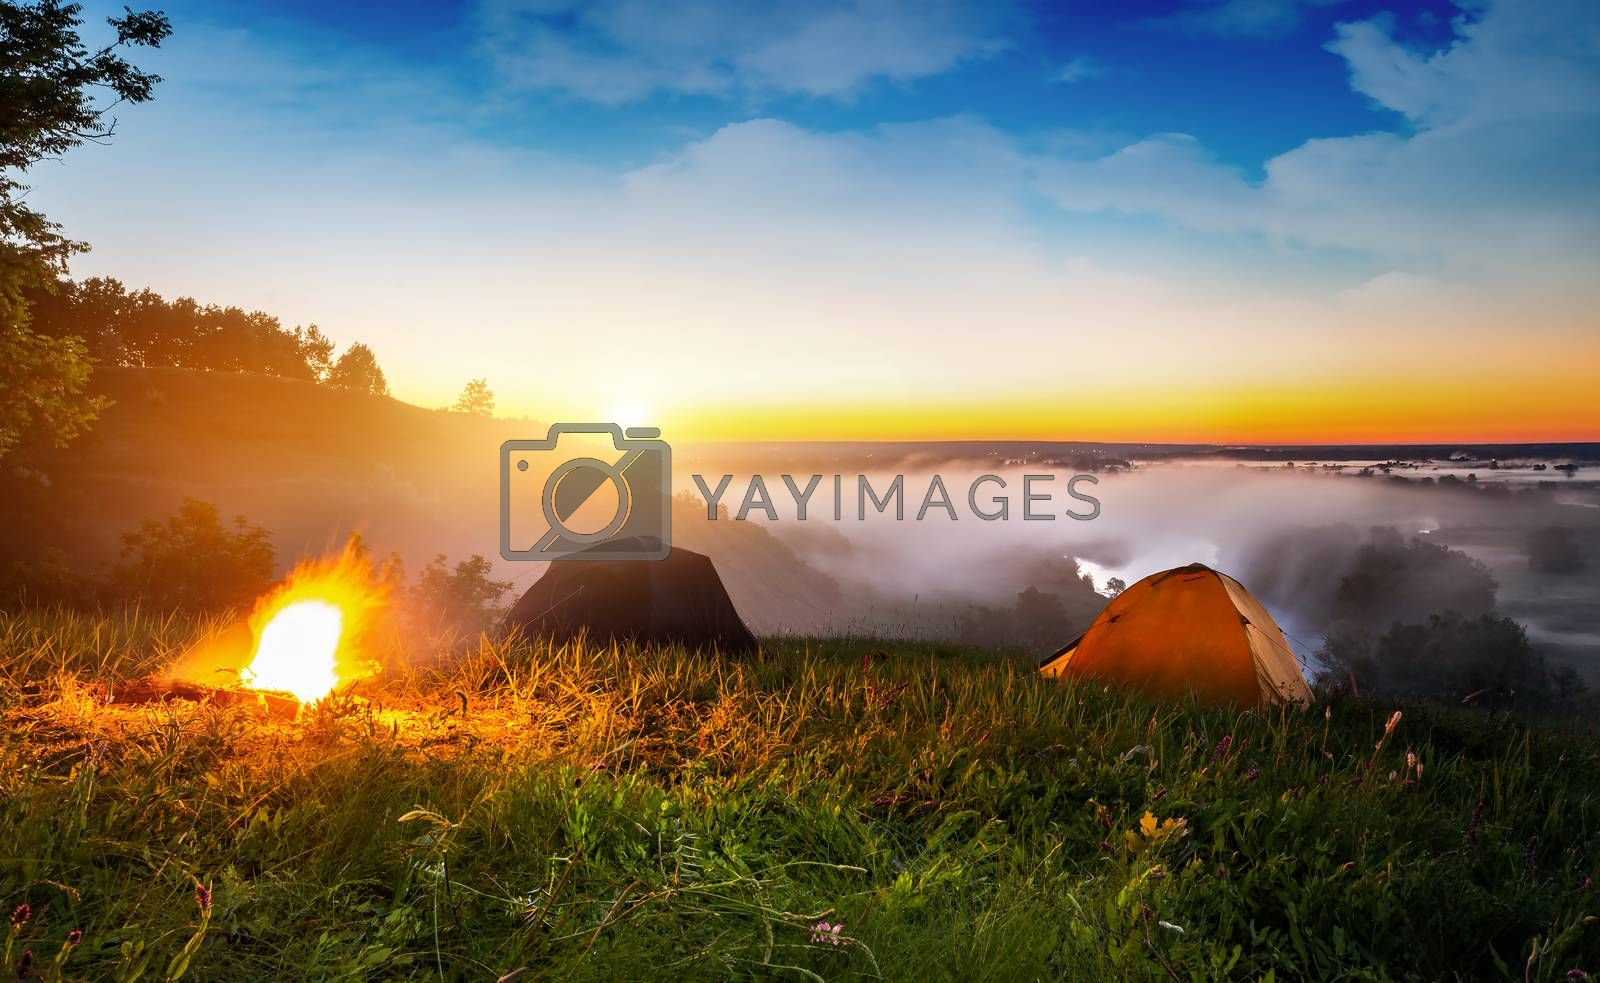 Tents and bonfire in steppe near river at sunrise